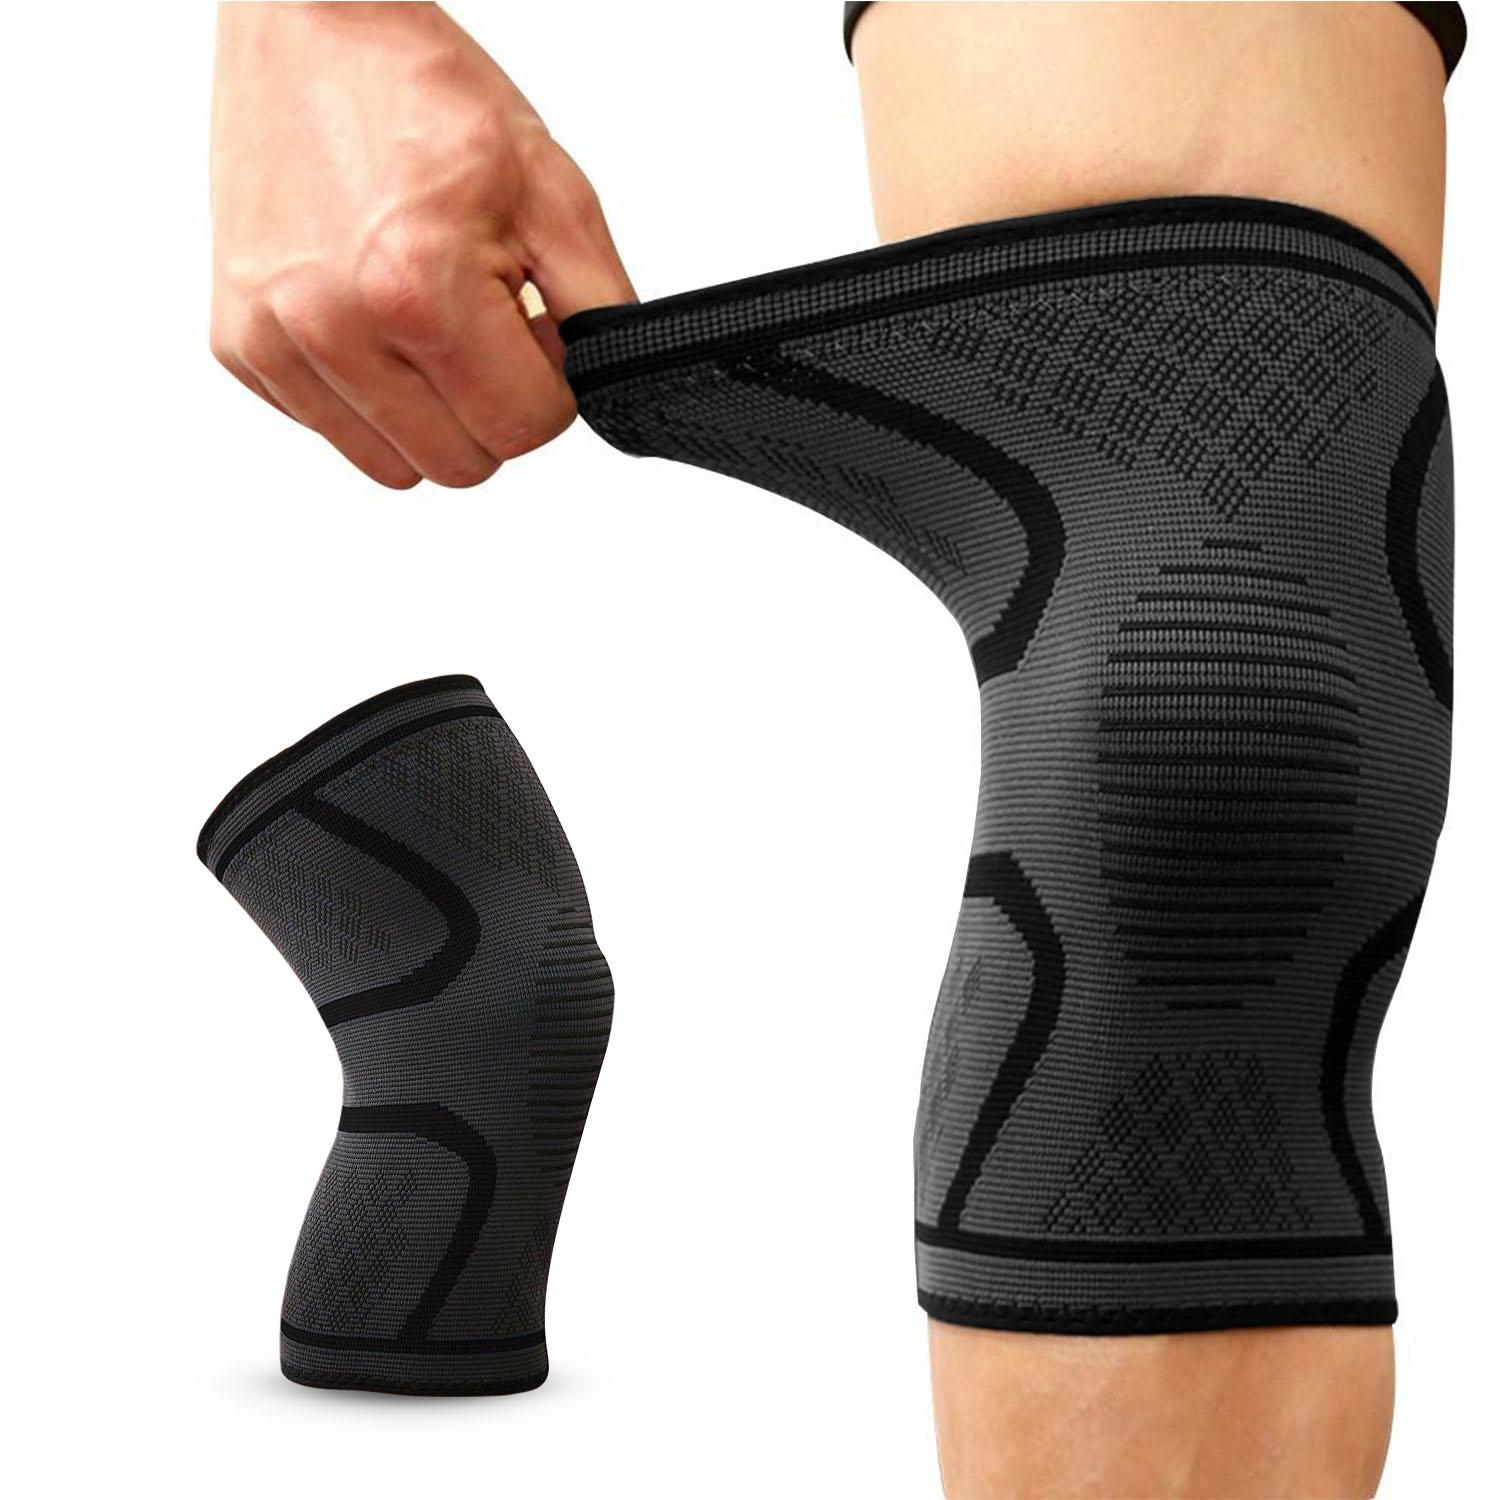 0217a1d5bf Knee Support Brace Compression Sleeves Breathable Anti Slip Arthritis Pain  Relief Elastic Adjustable Support Brace for